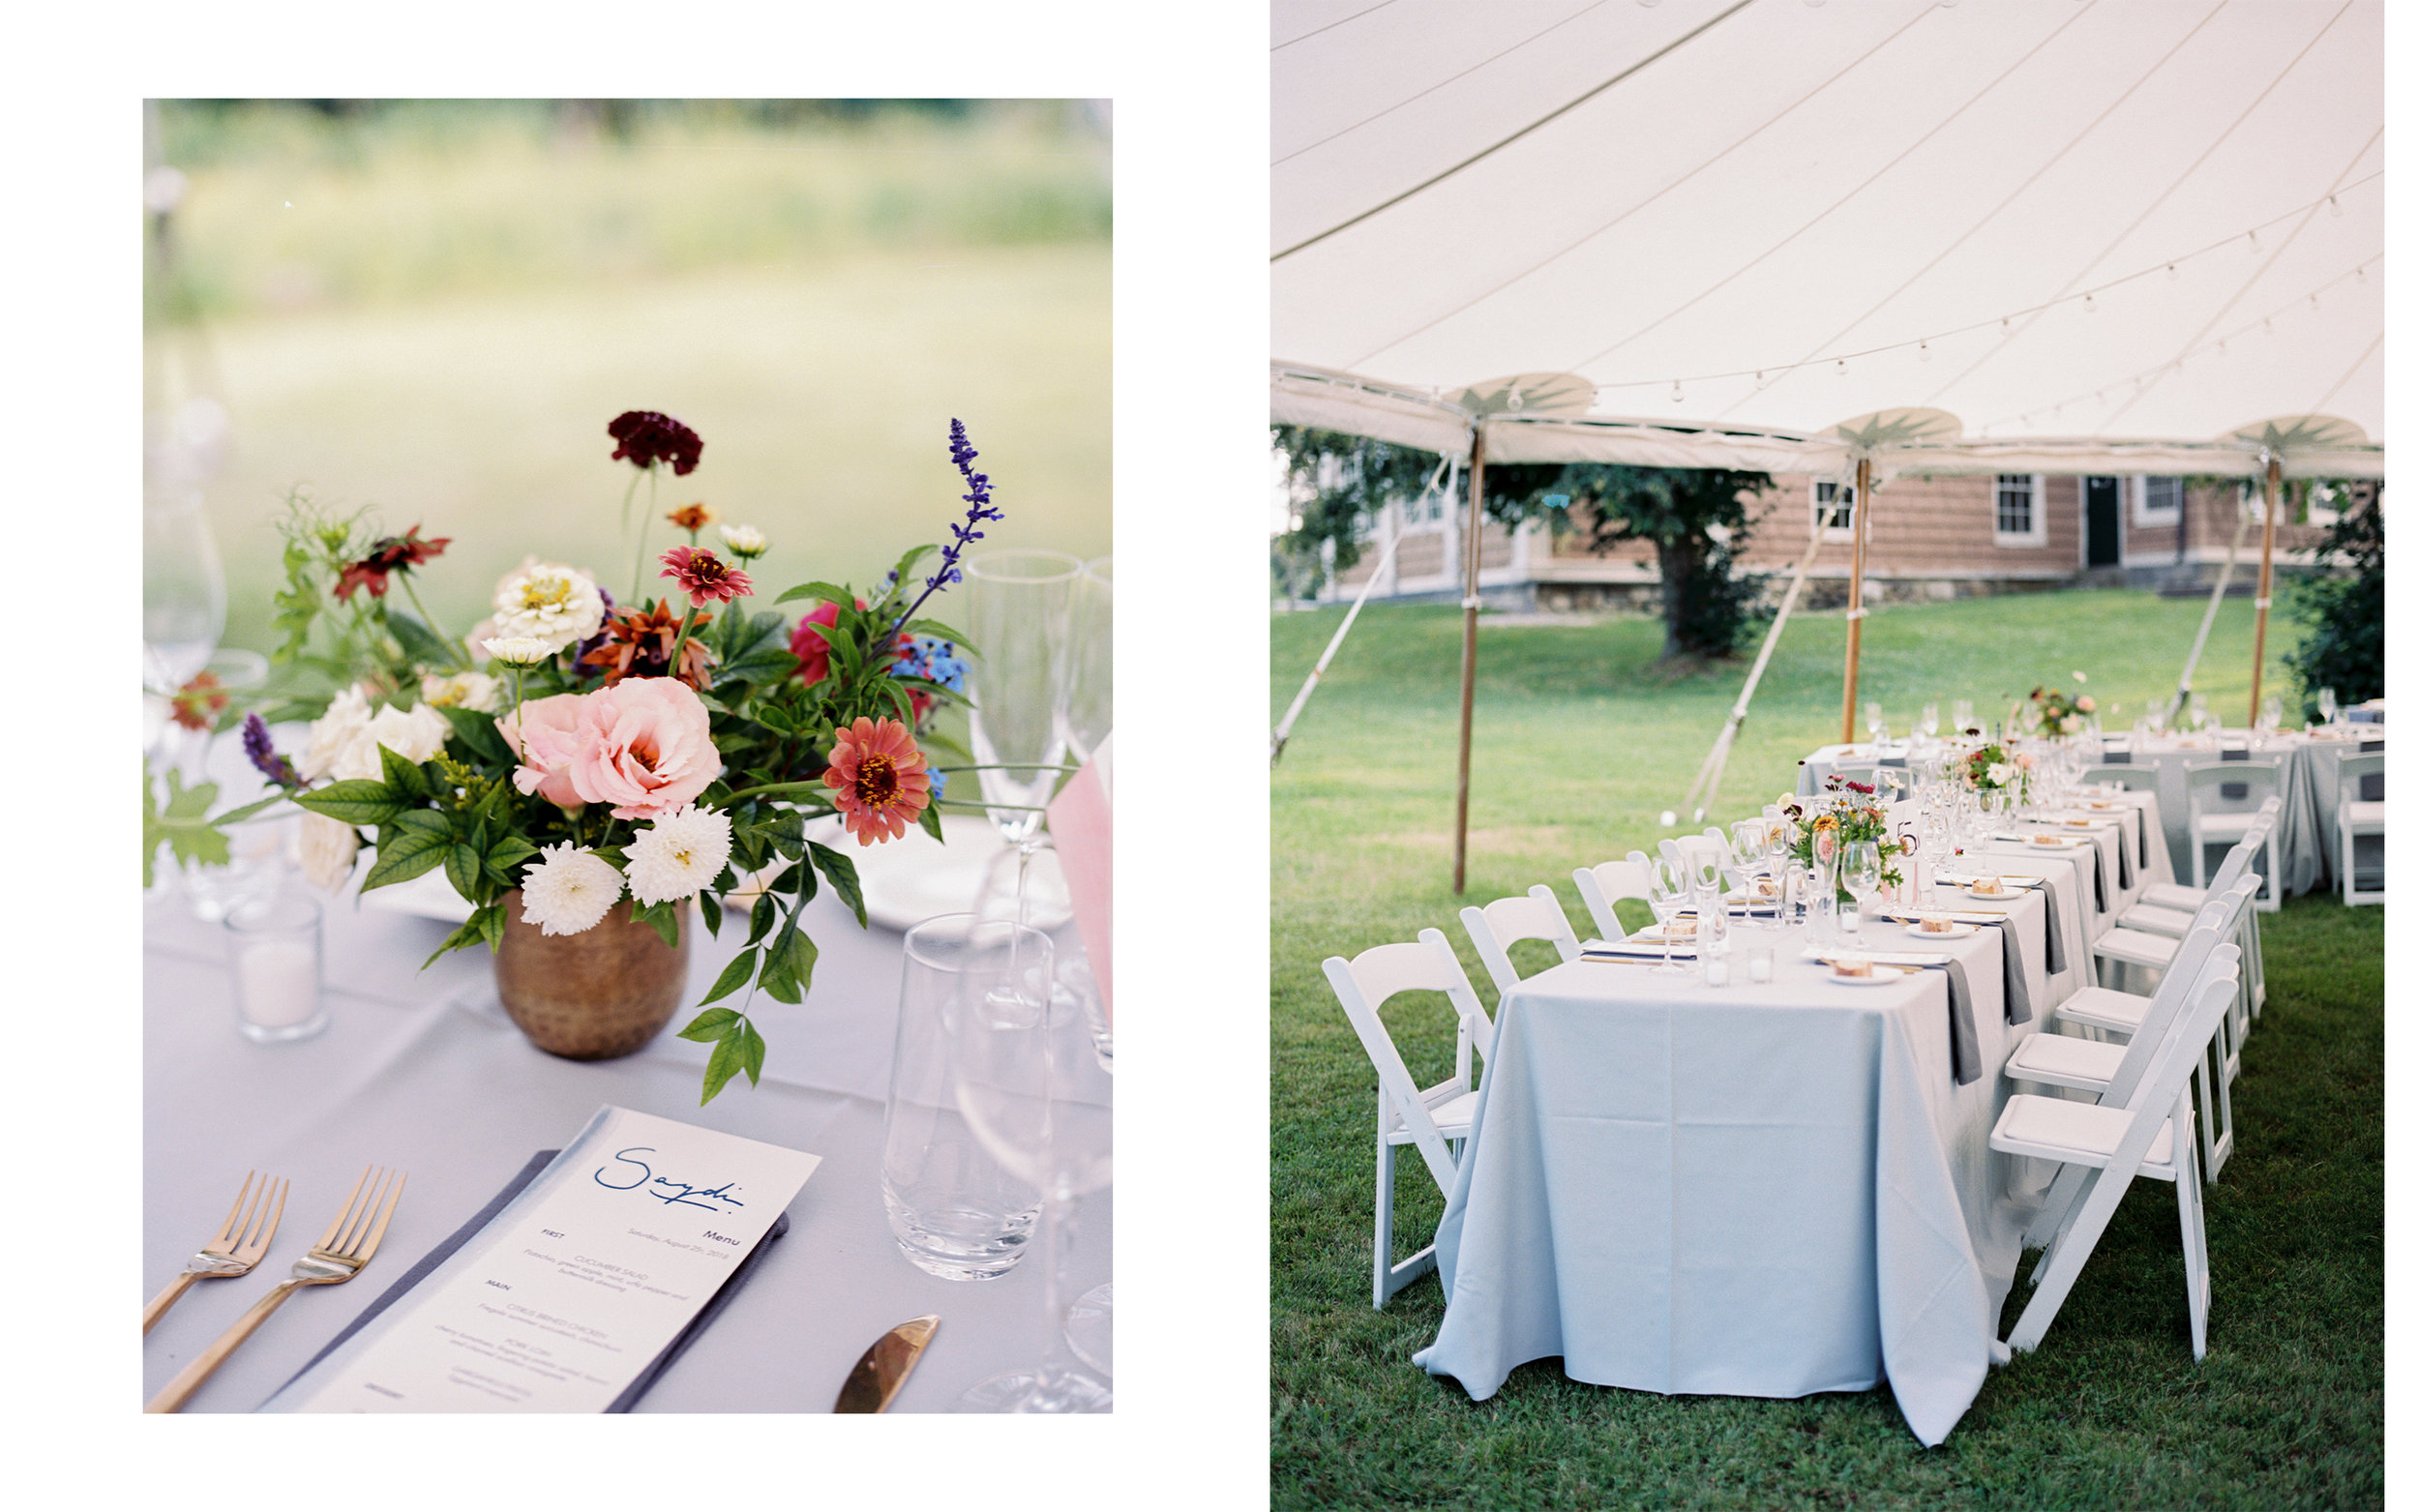 Berkshires Wedding Fine Art Wedding Photographer_Meg Haley Photographs_001.jpg